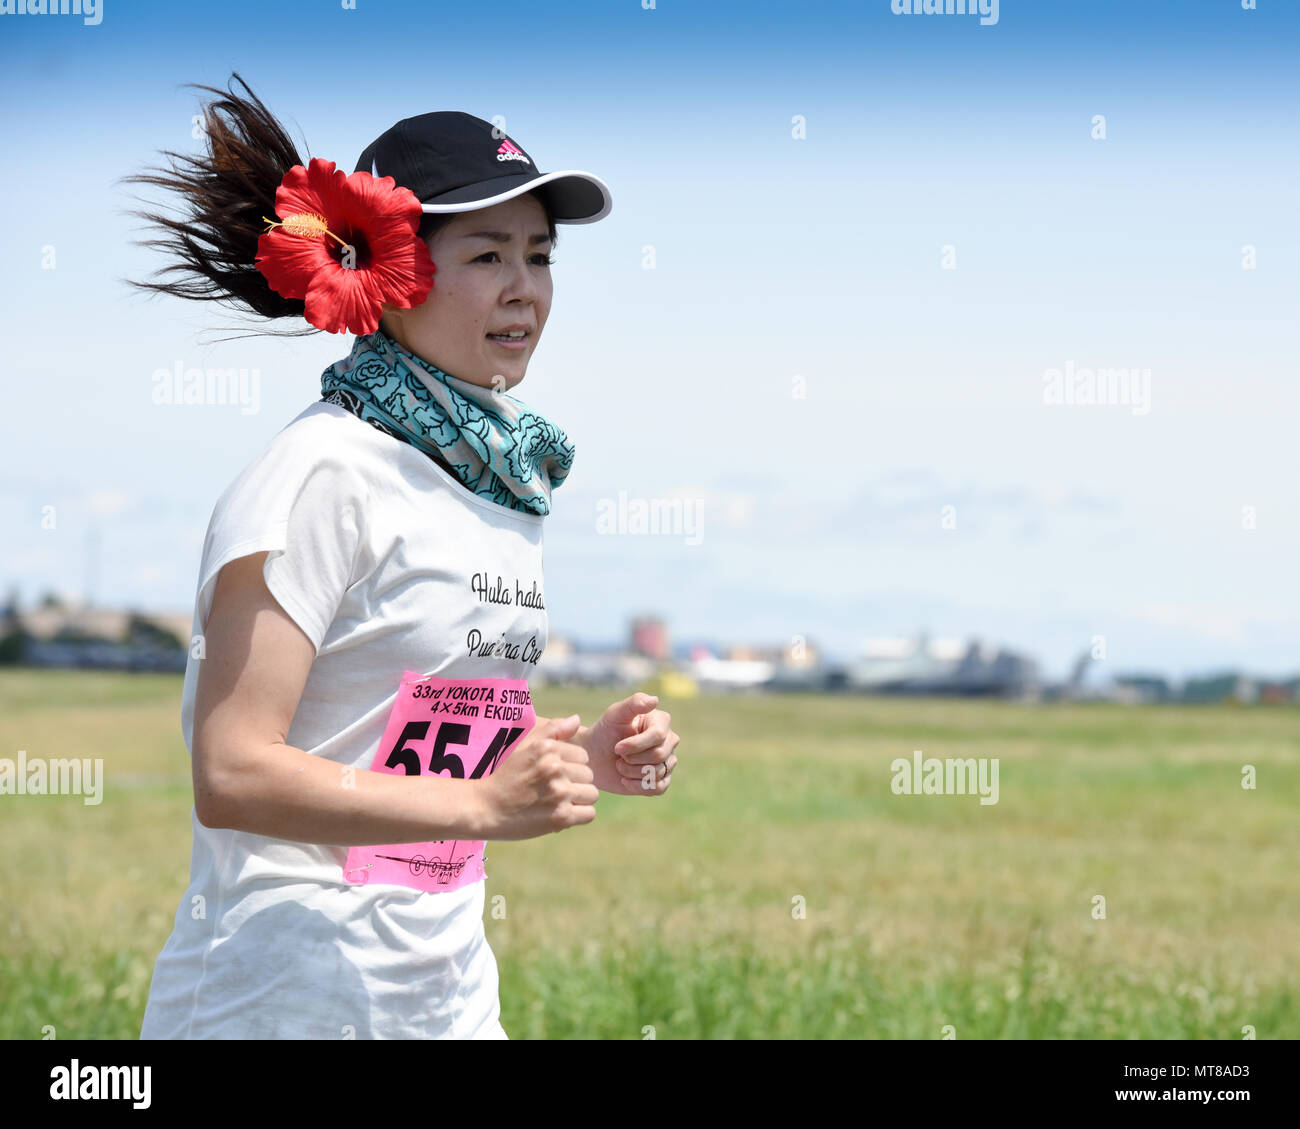 A runner participates in the 5K Race during the 33rd Annual Yokota Striders Ekiden at Yokota Air Base, Japan, June 4, 2017. The races, which consisted of a 2K Kids Run, 2K Family Run, 5K Race and the main Ekiden Race event, promoted friendship and  physical fitness. (U.S. Air Force photo by Machiko Arita) - Stock Image